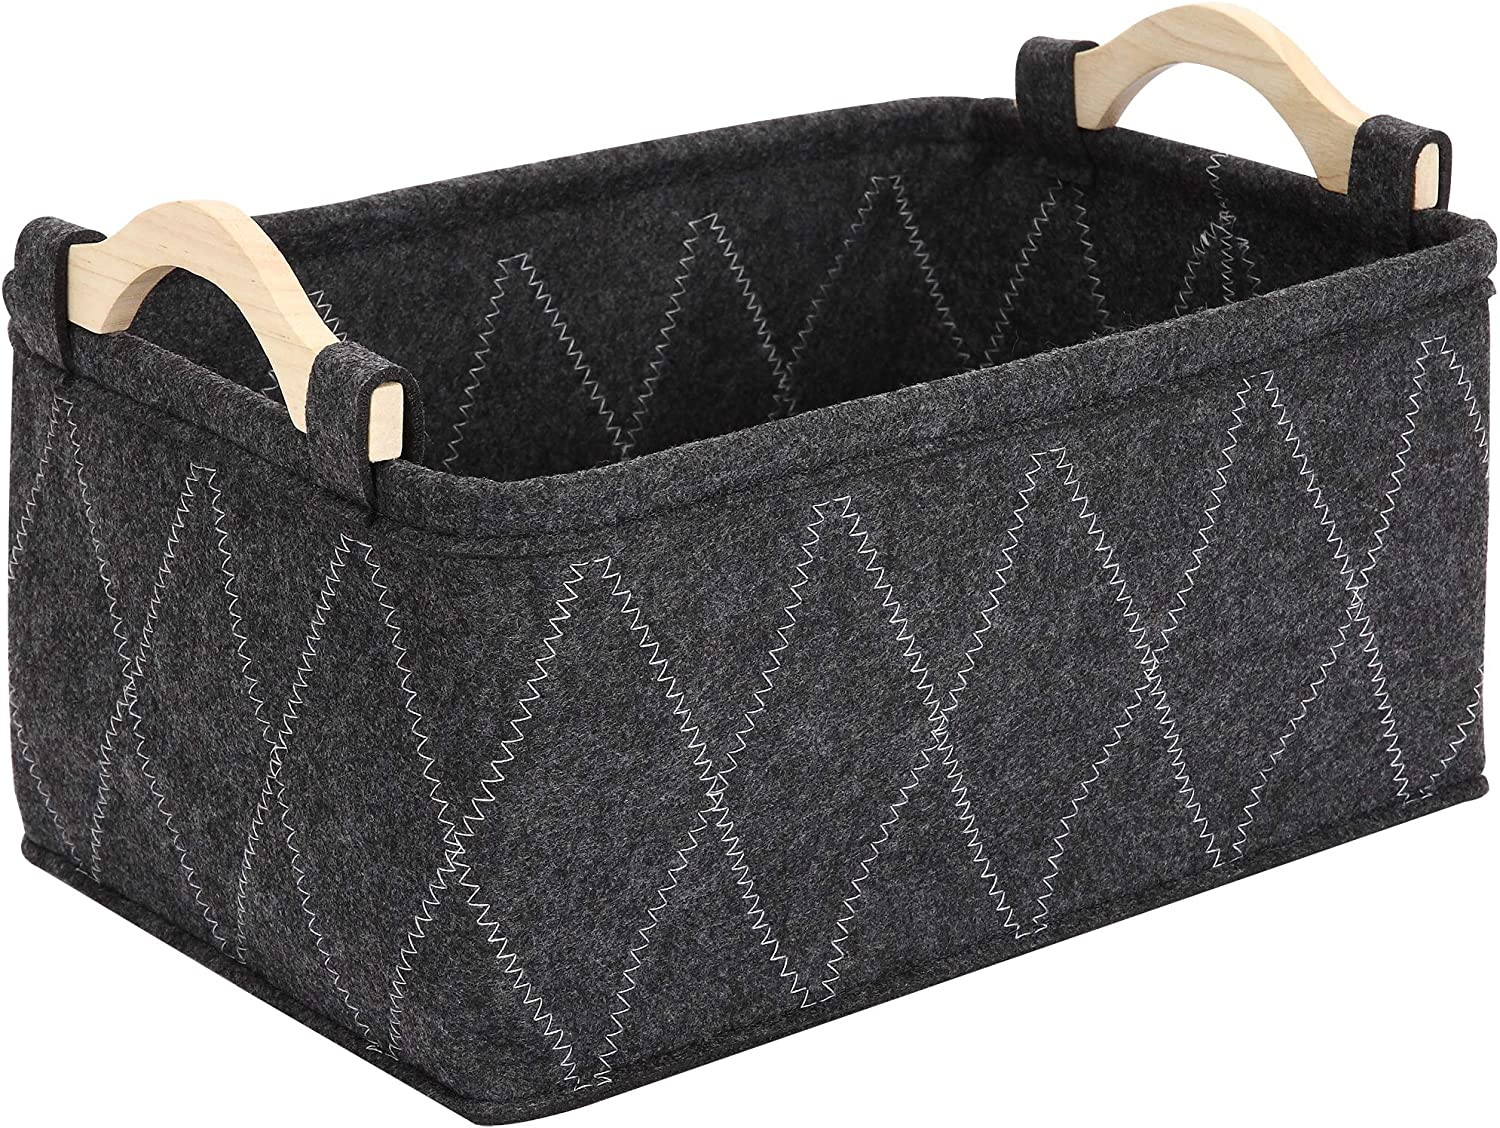 Brabtod Felt pet Toy Box and Dog Toy Storage Baskets Bin, Perfect for organizing pet Toys, Blankets, leashes and Food